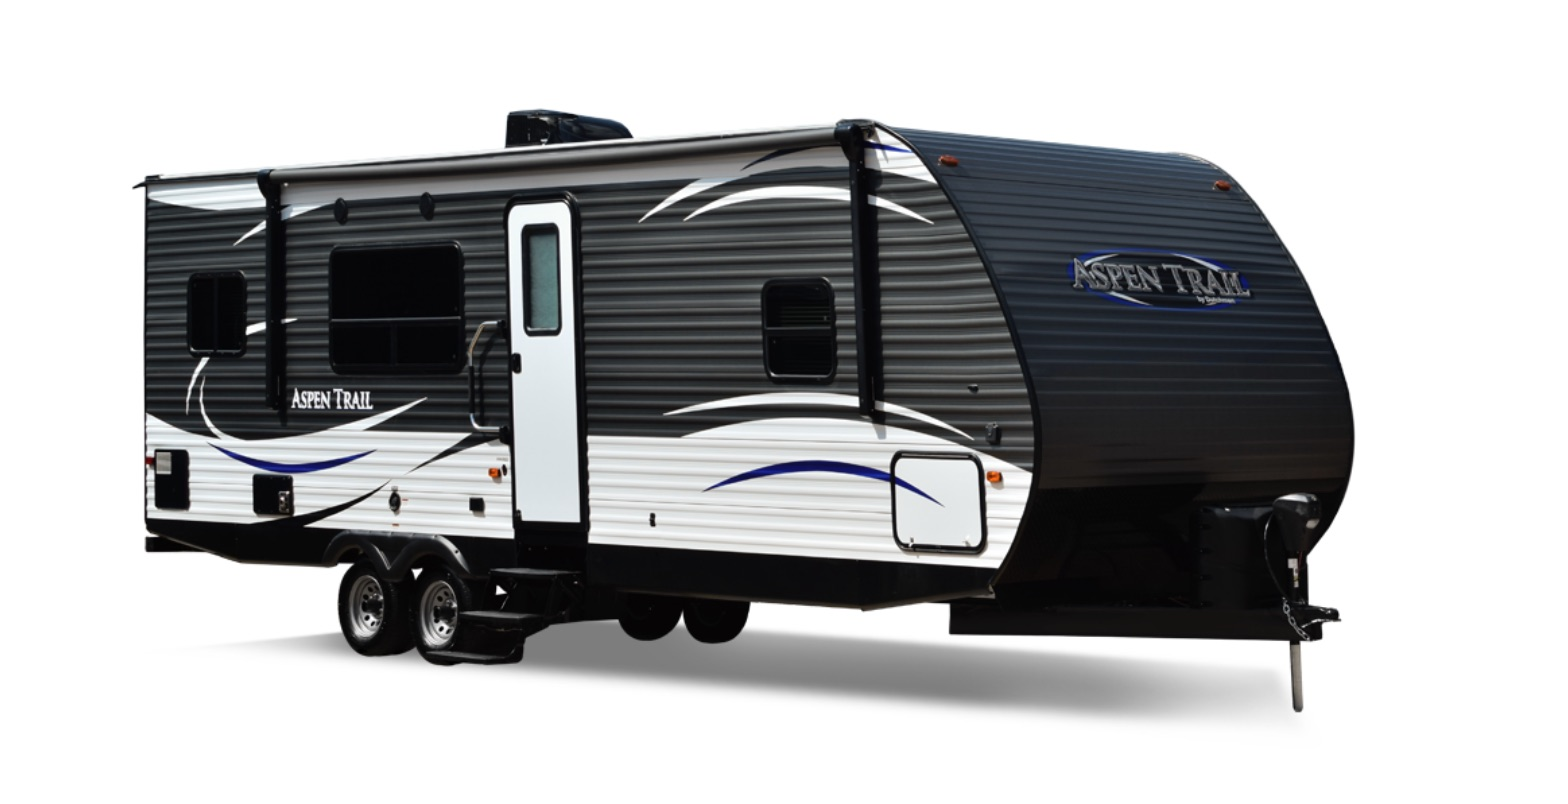 Aspen Trail Travel Trailer